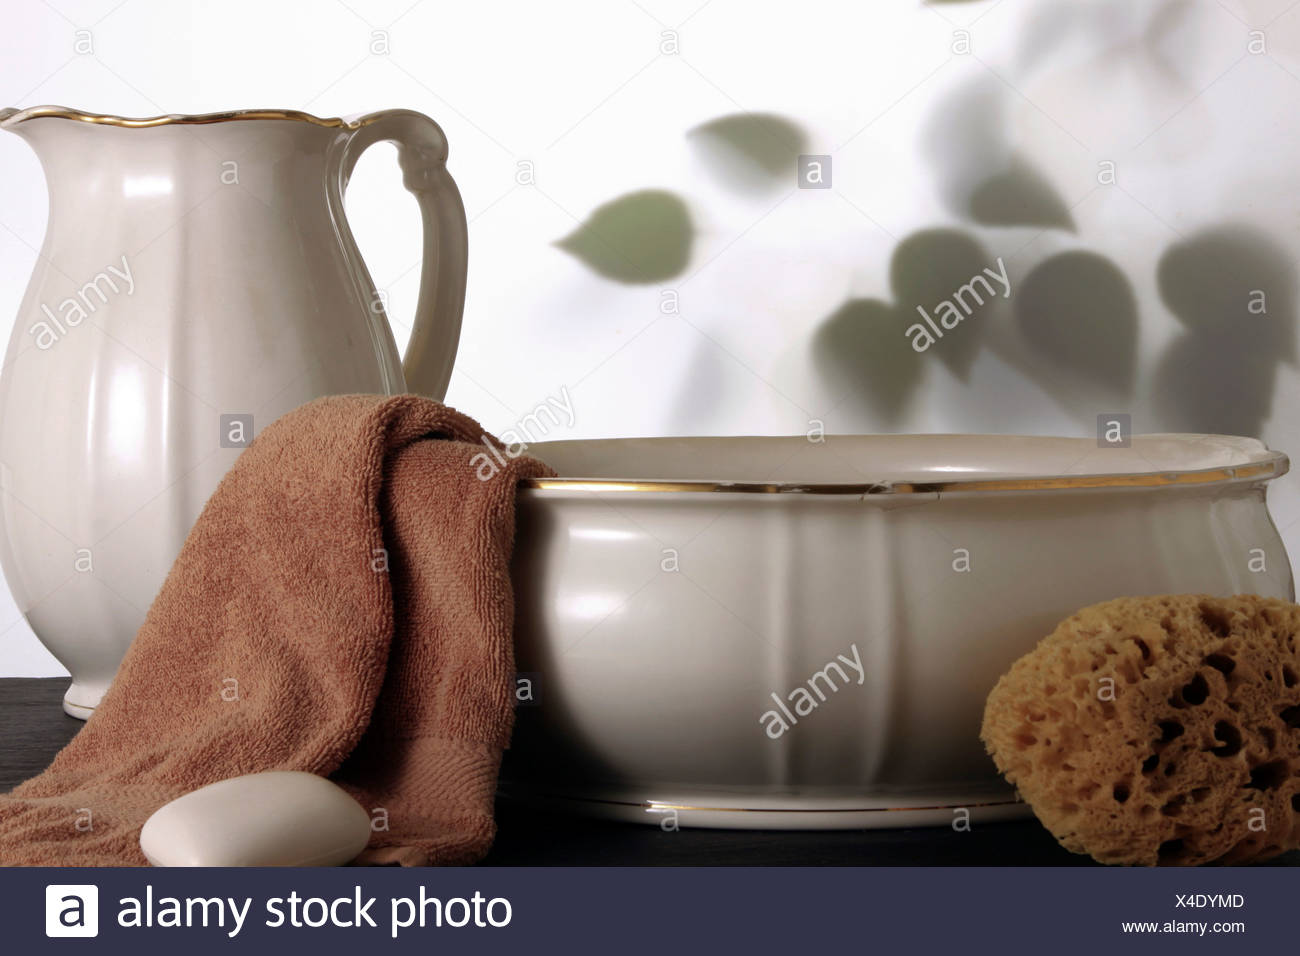 Old wash basin with towel, soap and sponge Stock Photo